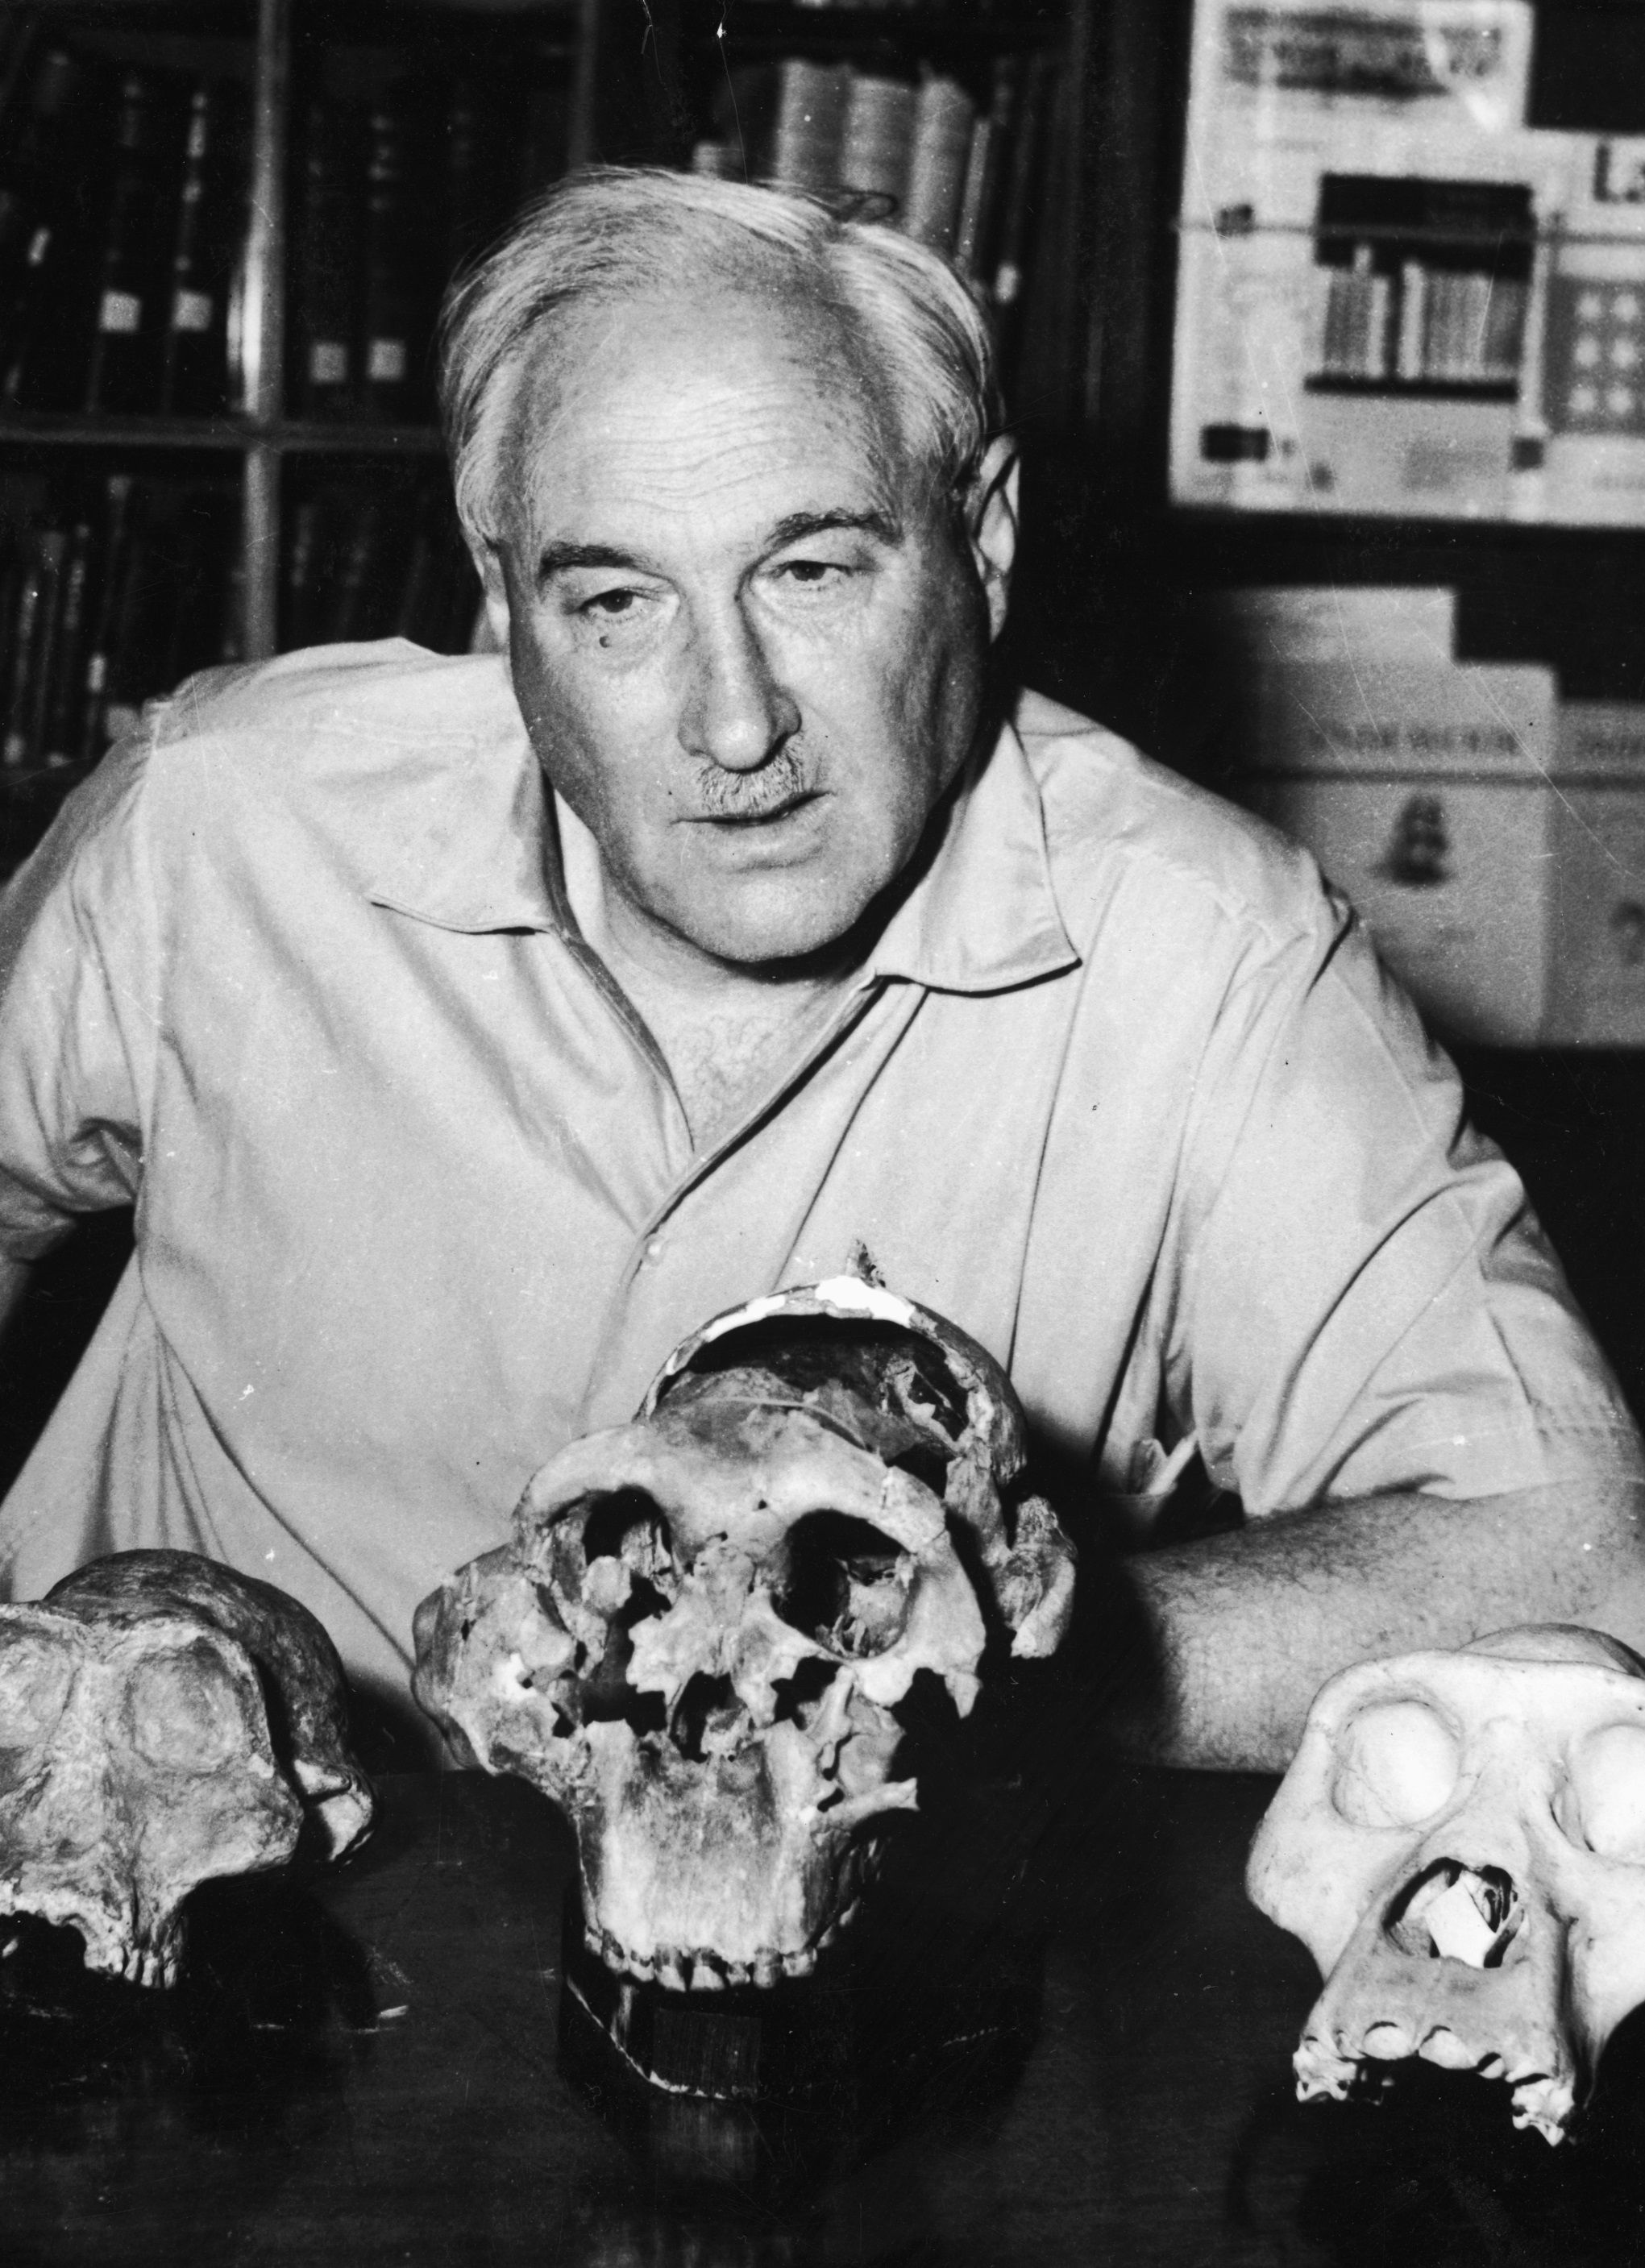 Louis S B Leakey 7augt 1oct Was A British